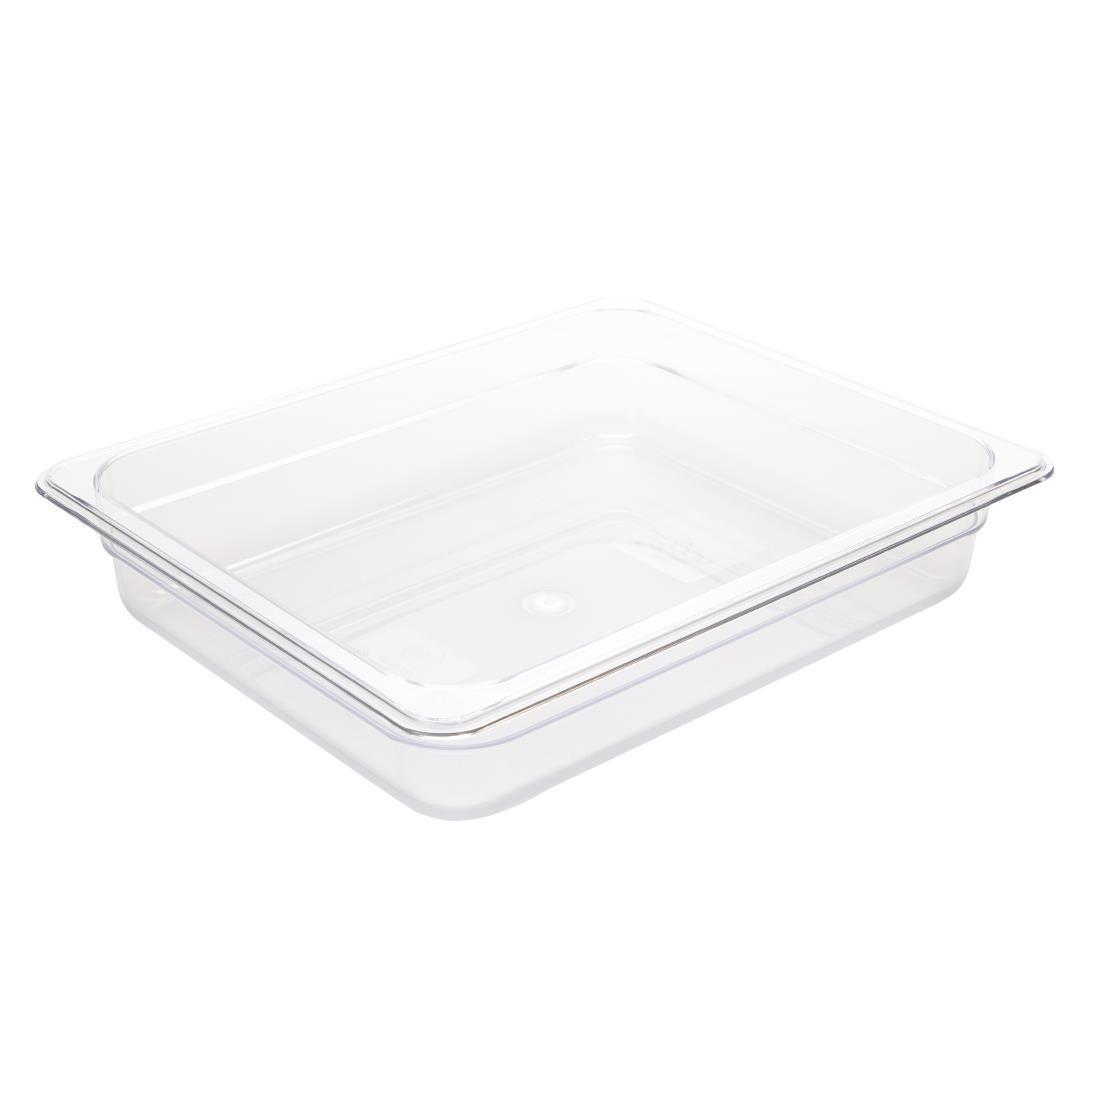 Vogue Polycarbonate 1/2 Gastronorm Container 65mm Clear - U228